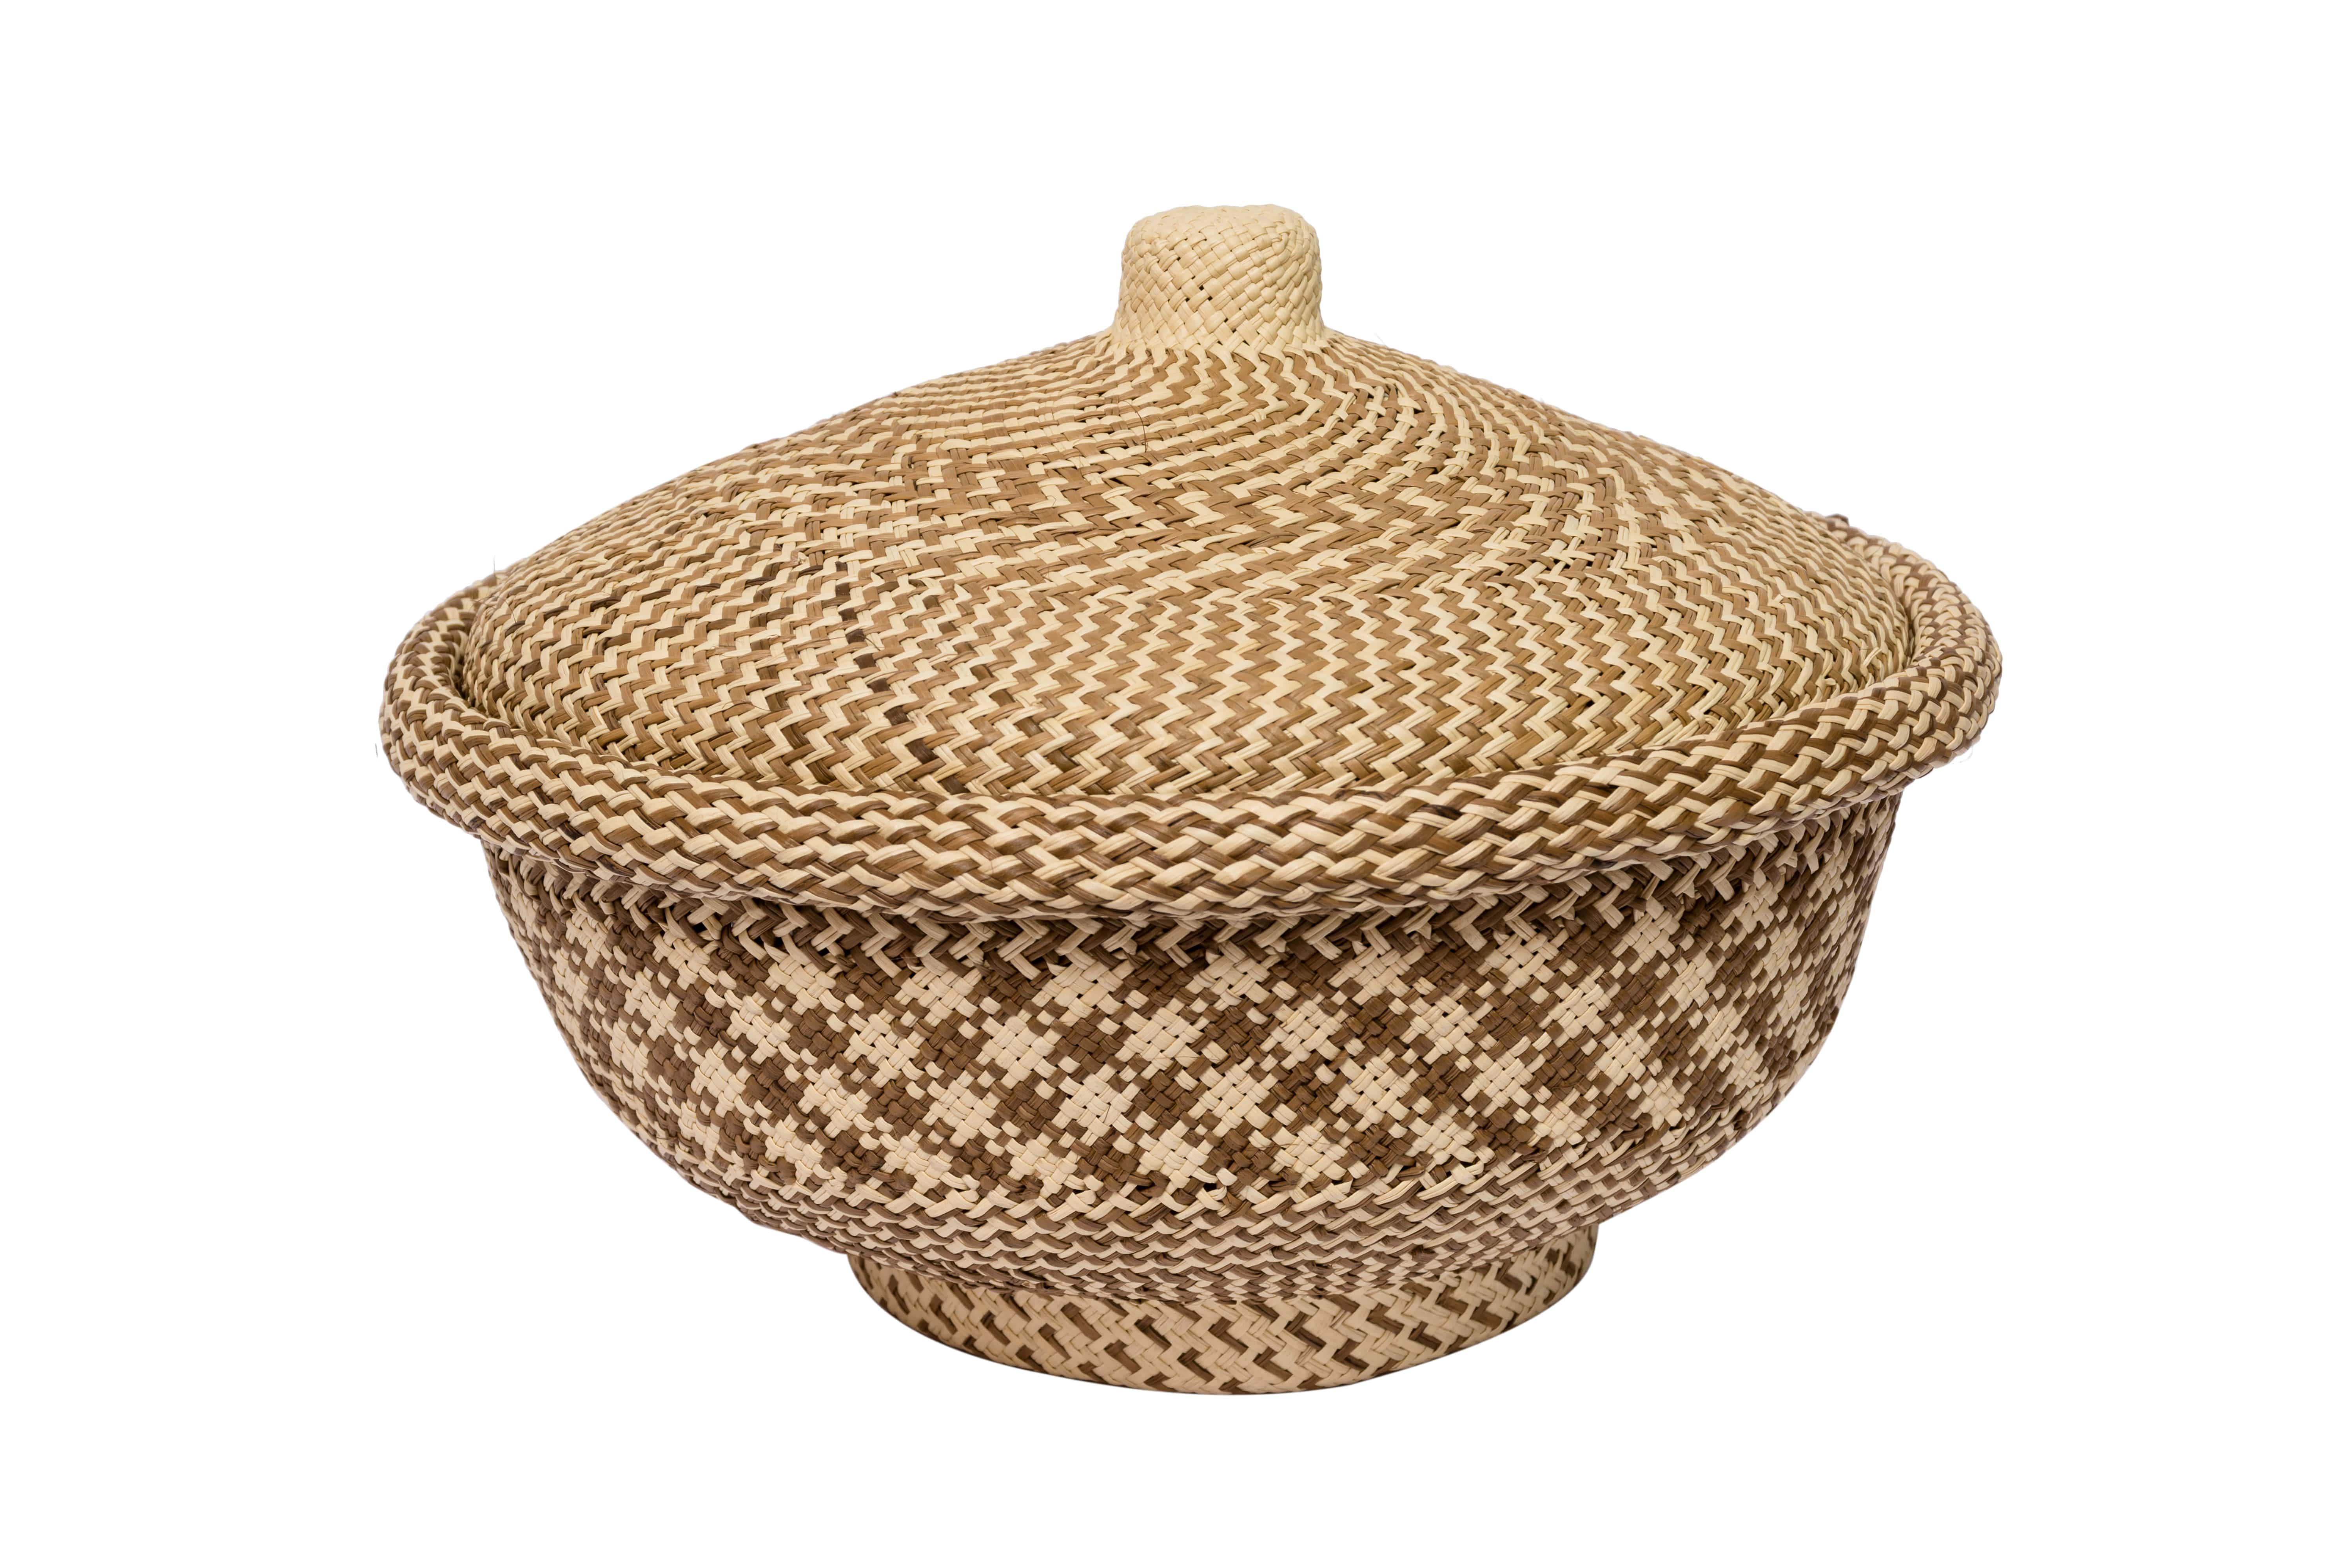 Bread basket in iraca brown-natural